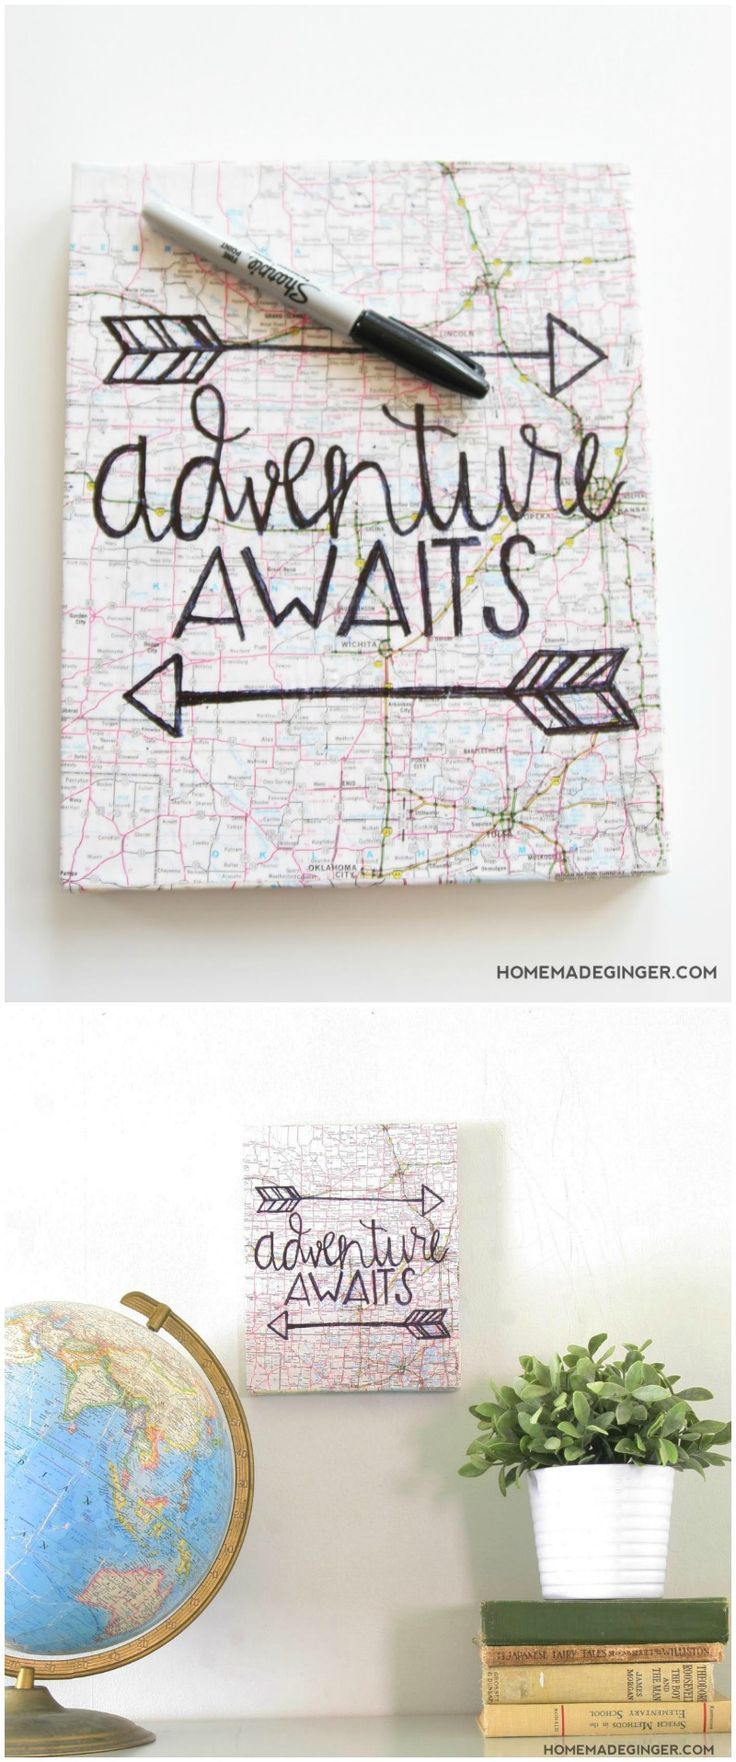 This unique hand lettered canvas art can be customized with a variety of different papers, maps, or book pages to fit the space you are decorating!